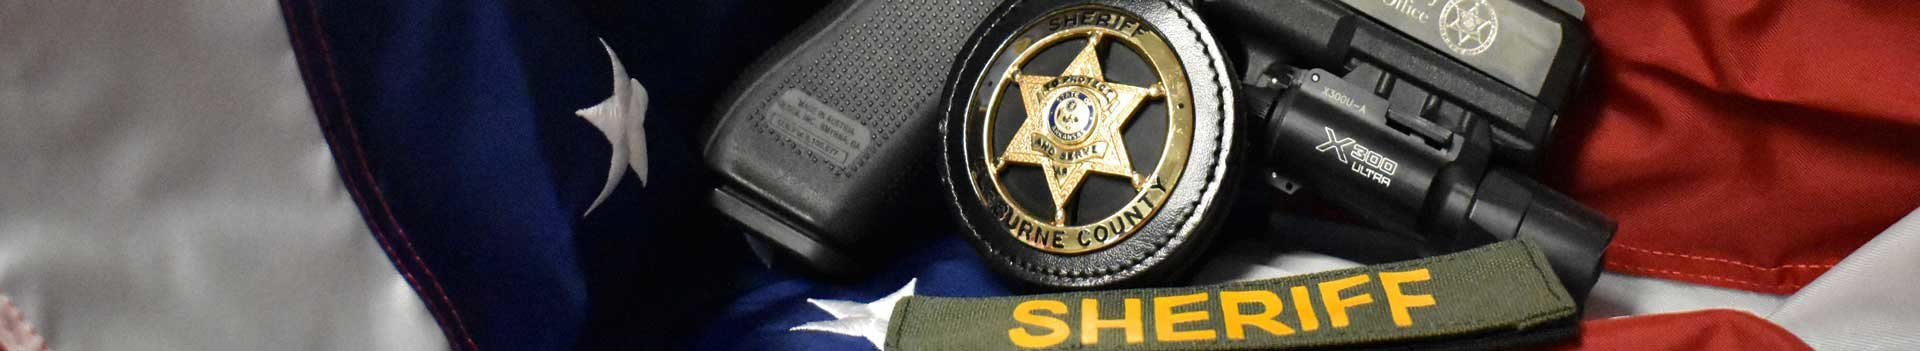 Sheriff Gun and Badge